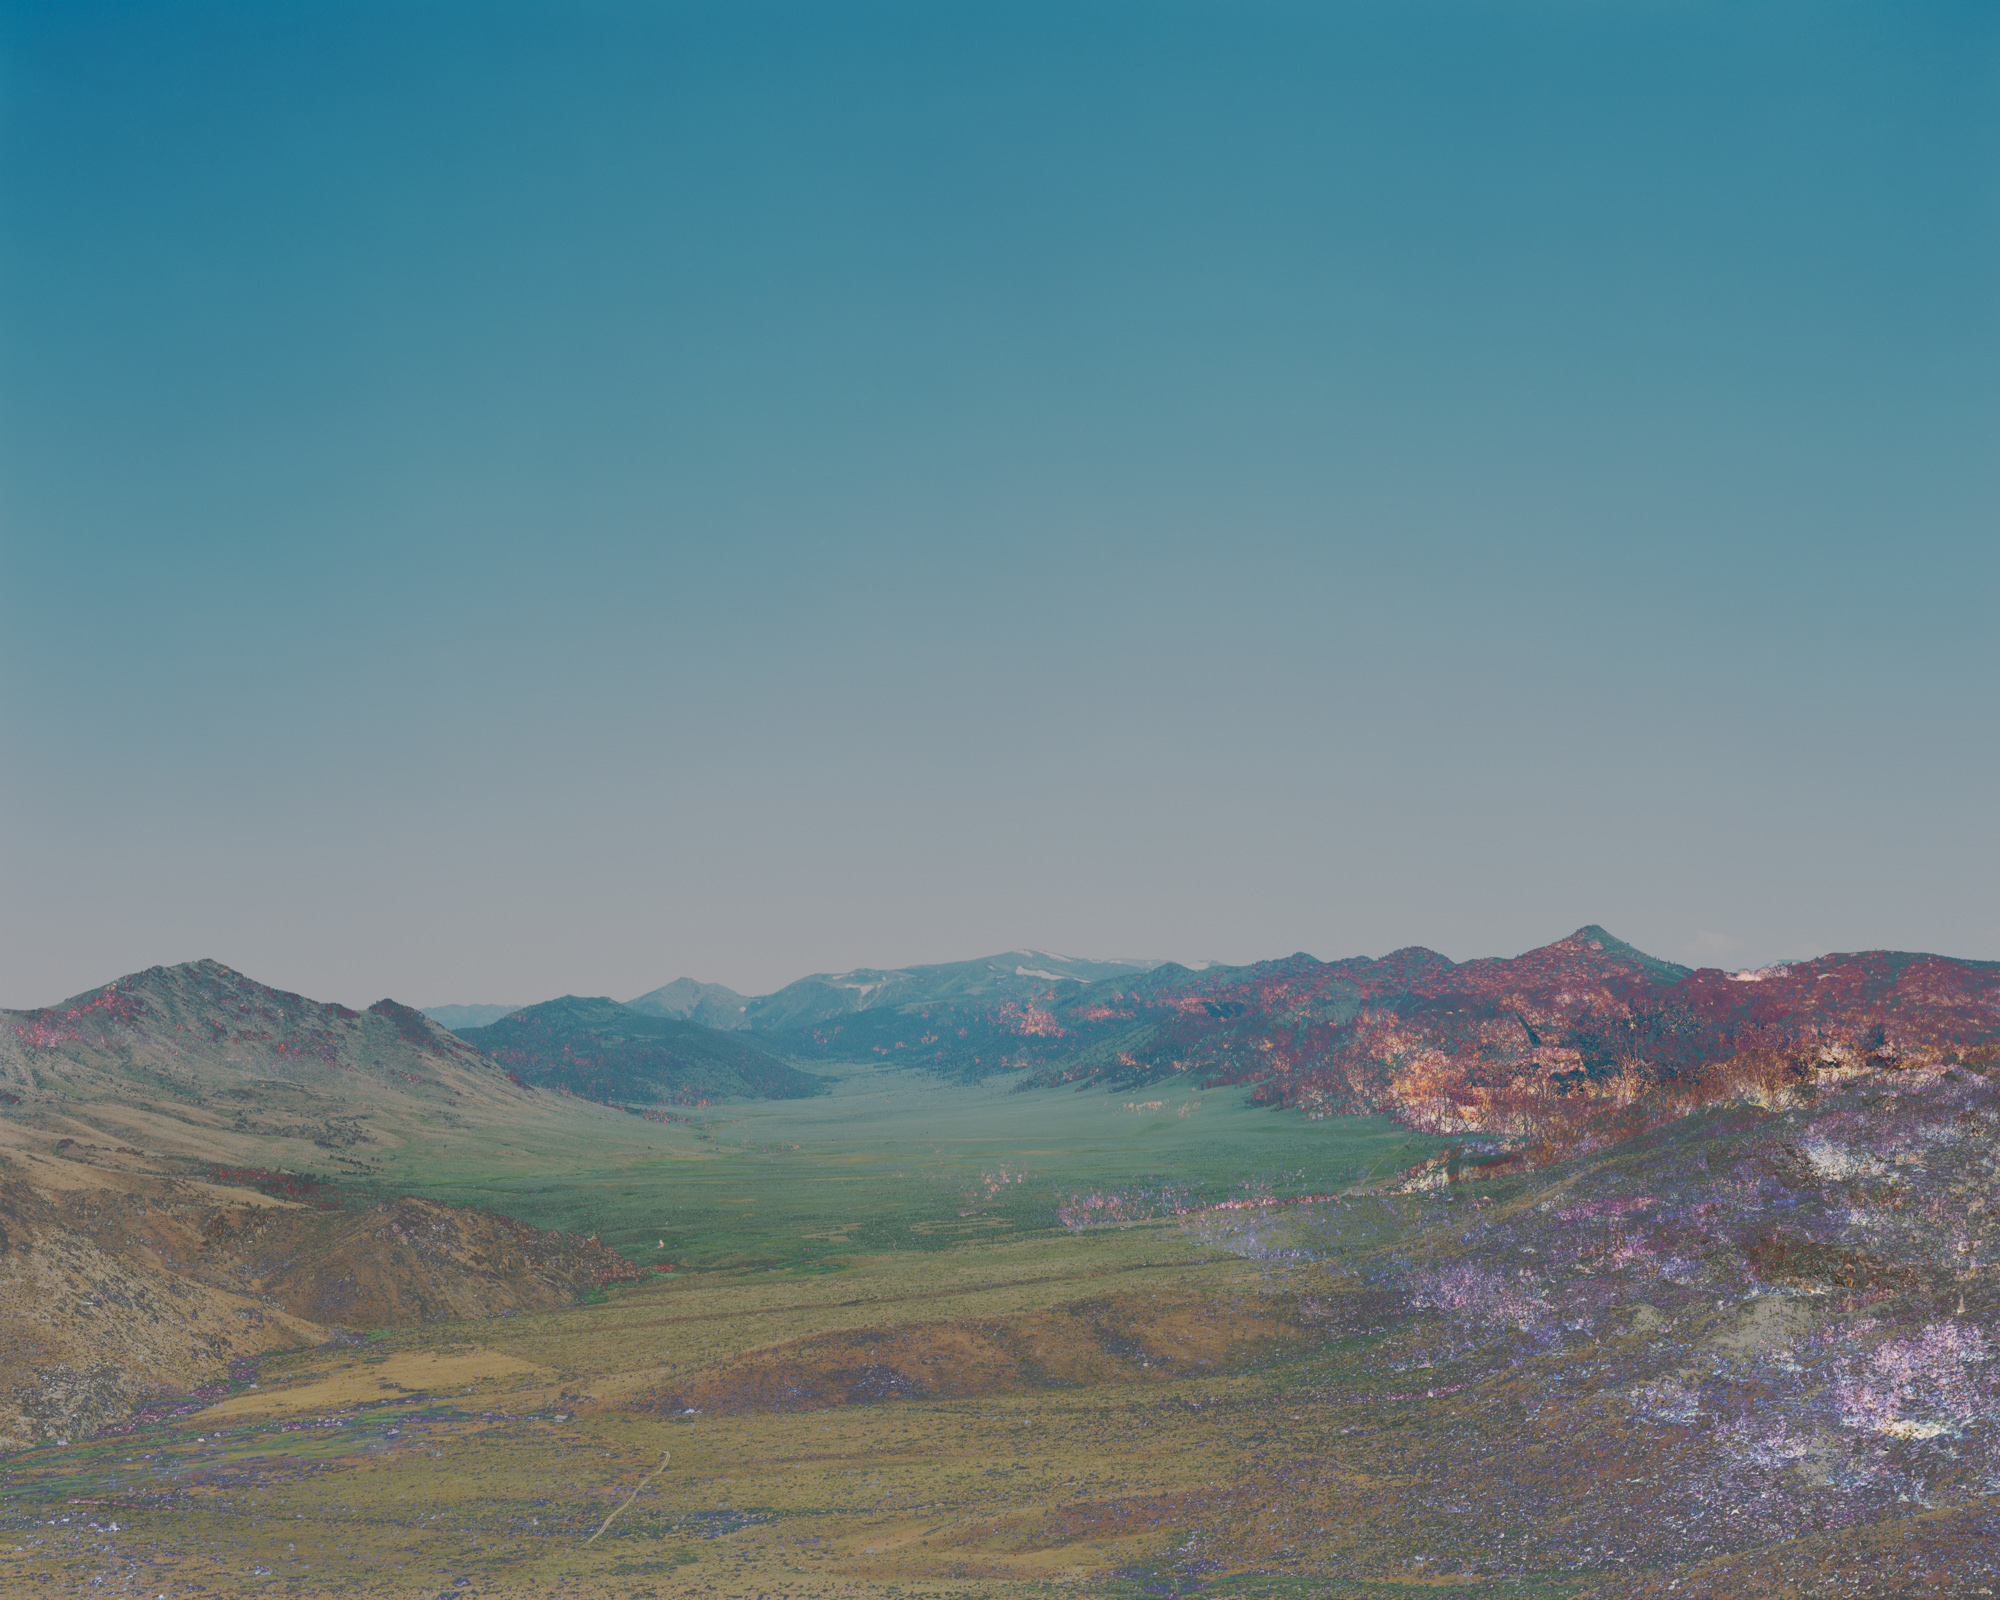 Pass 1 , 2013 archival pigment print 25.5 x 32 inches Edition 2 of 3 + 1 AP